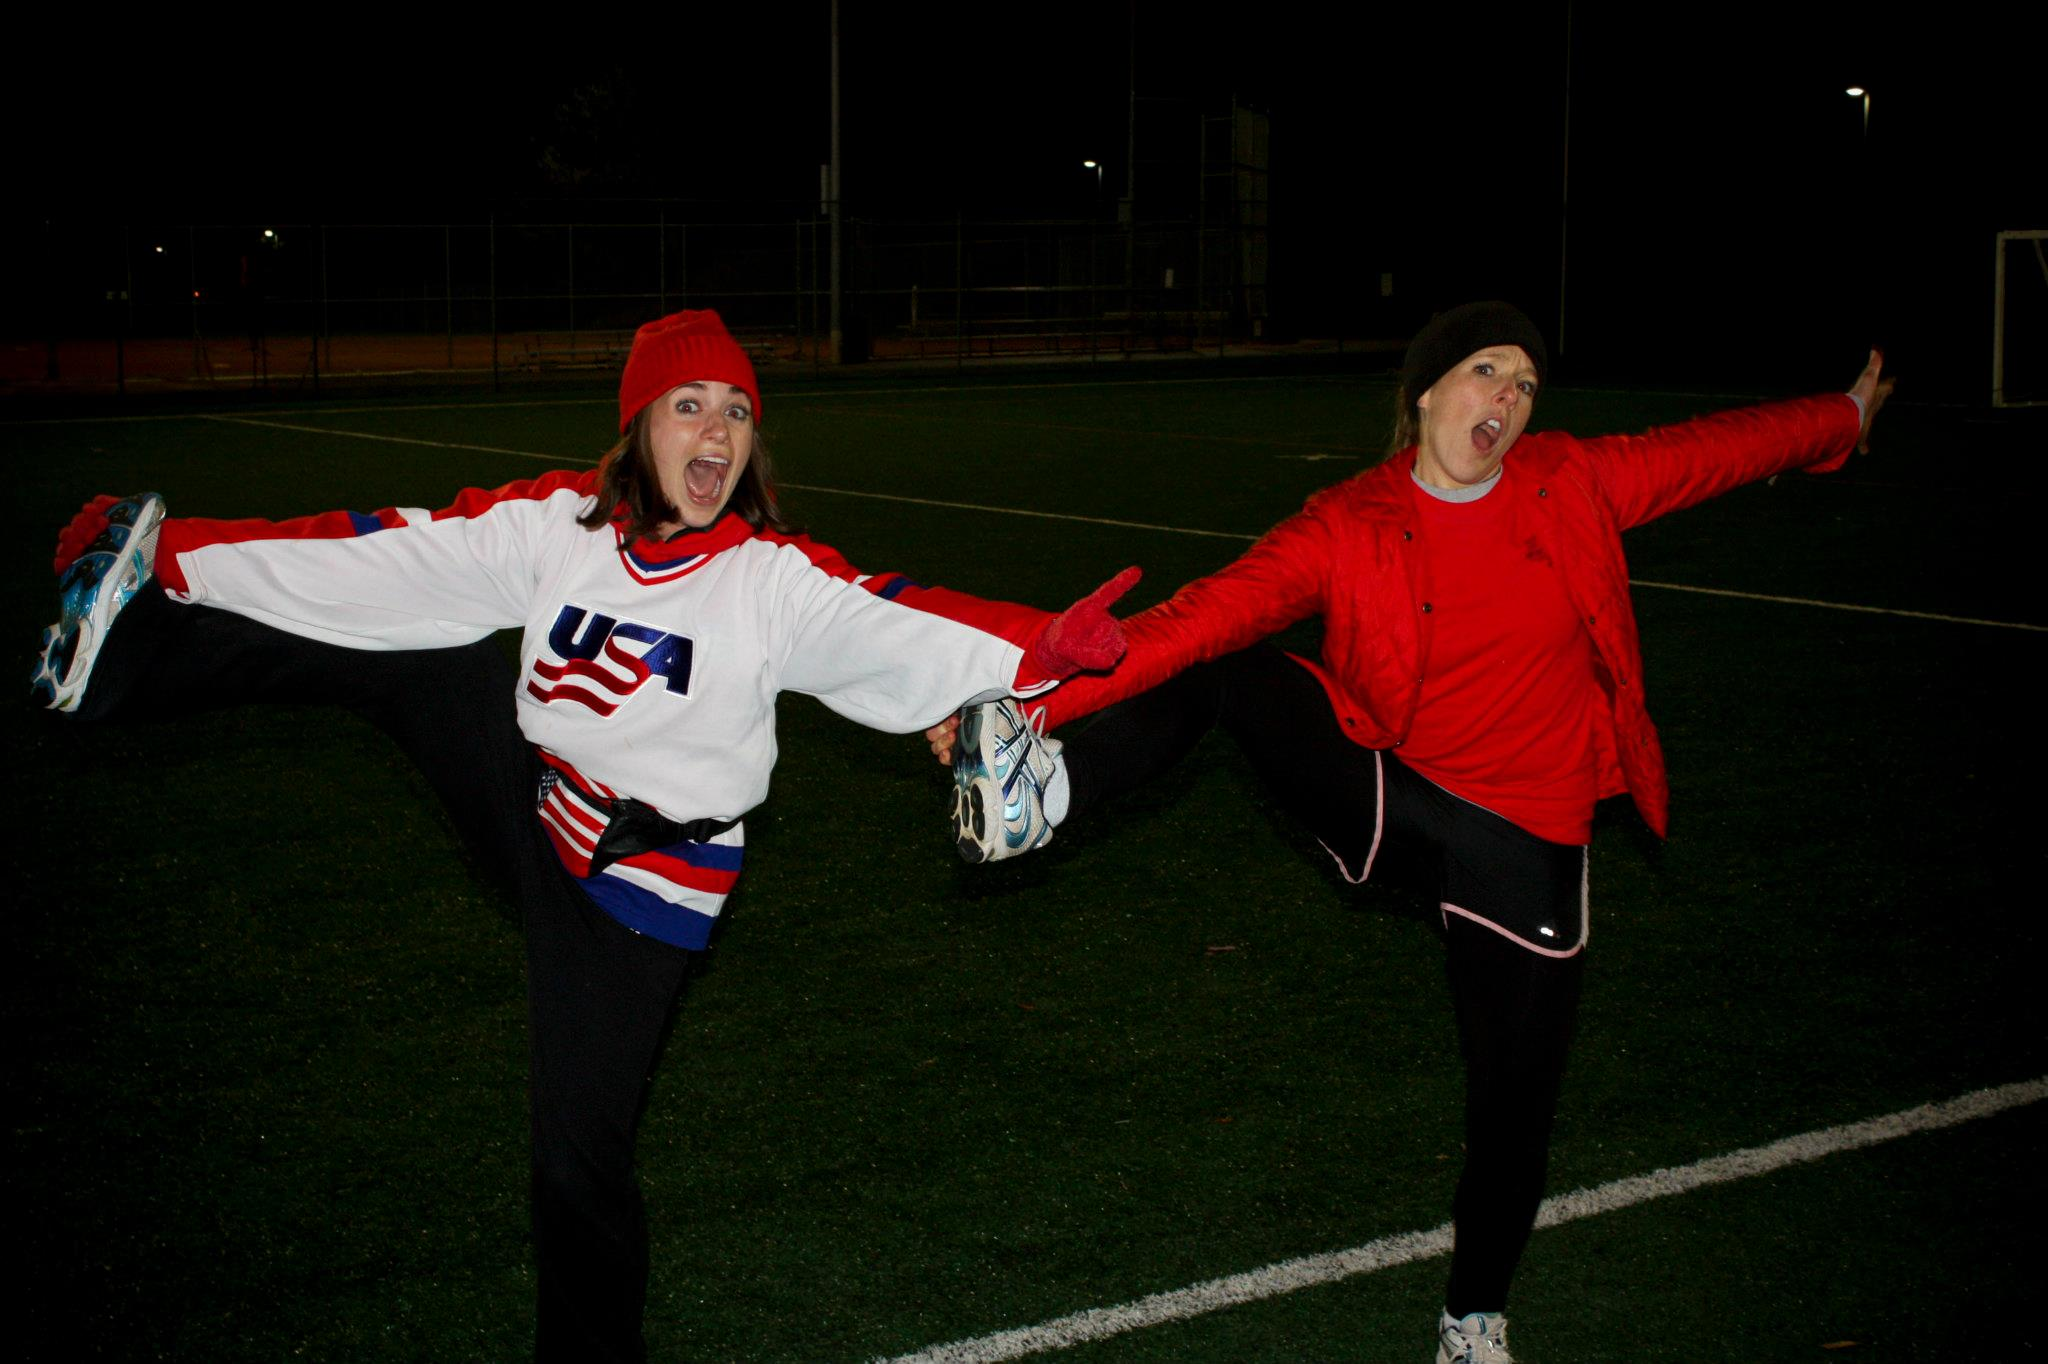 To bring the interview to a close, I HAD to throw in this photo of Sarah and I from a few years back. Because we are the sexiest cheerleaders that the Medical Football League (MFL) has ever seen.